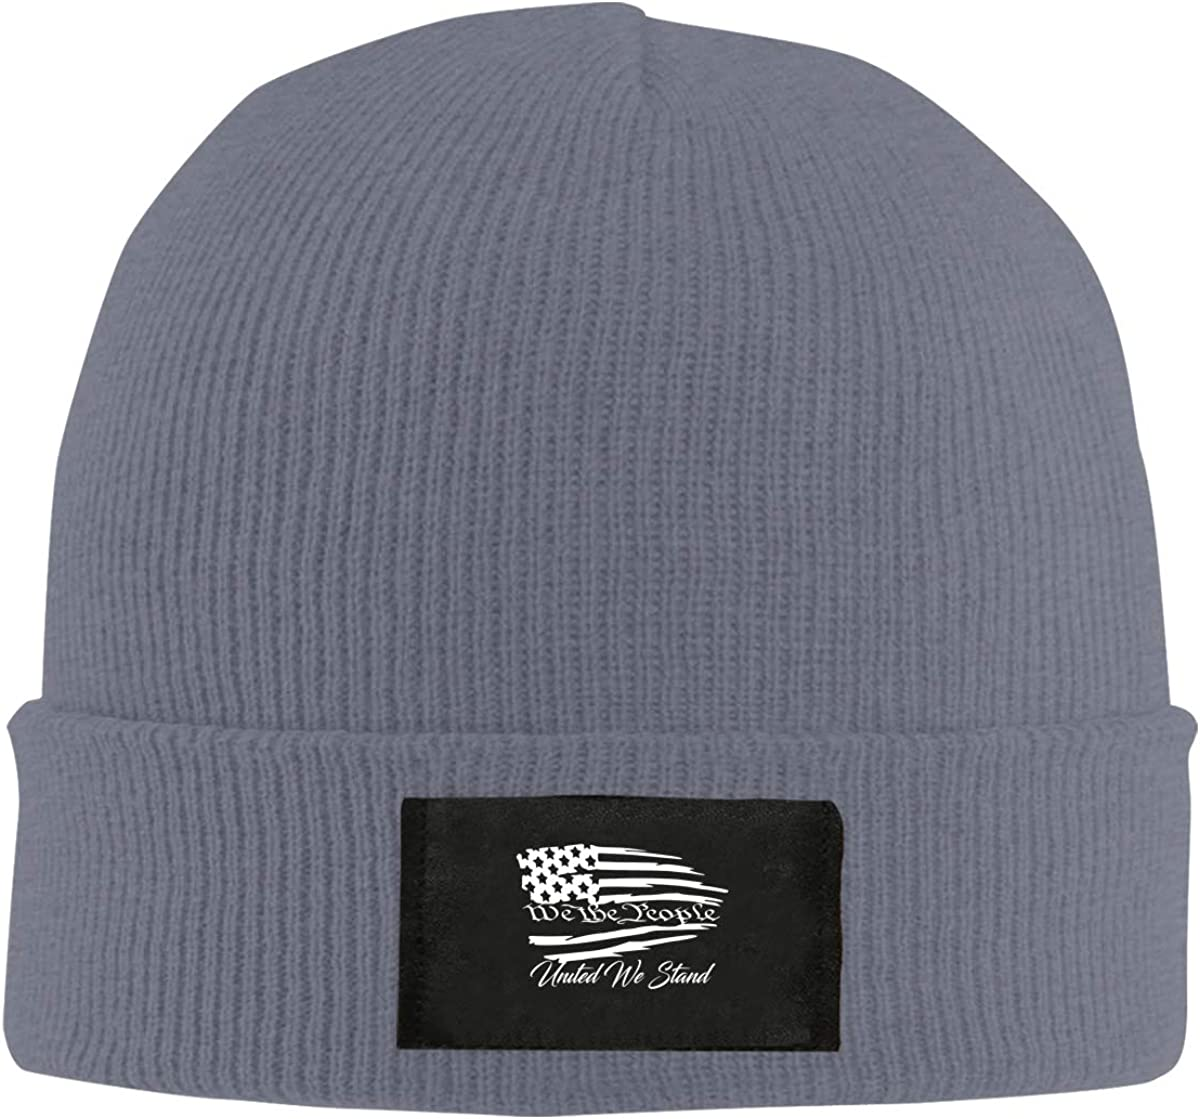 Unisex Stylish Slouch Beanie Hats Black We The People United We Stand Top Level Beanie Men Women